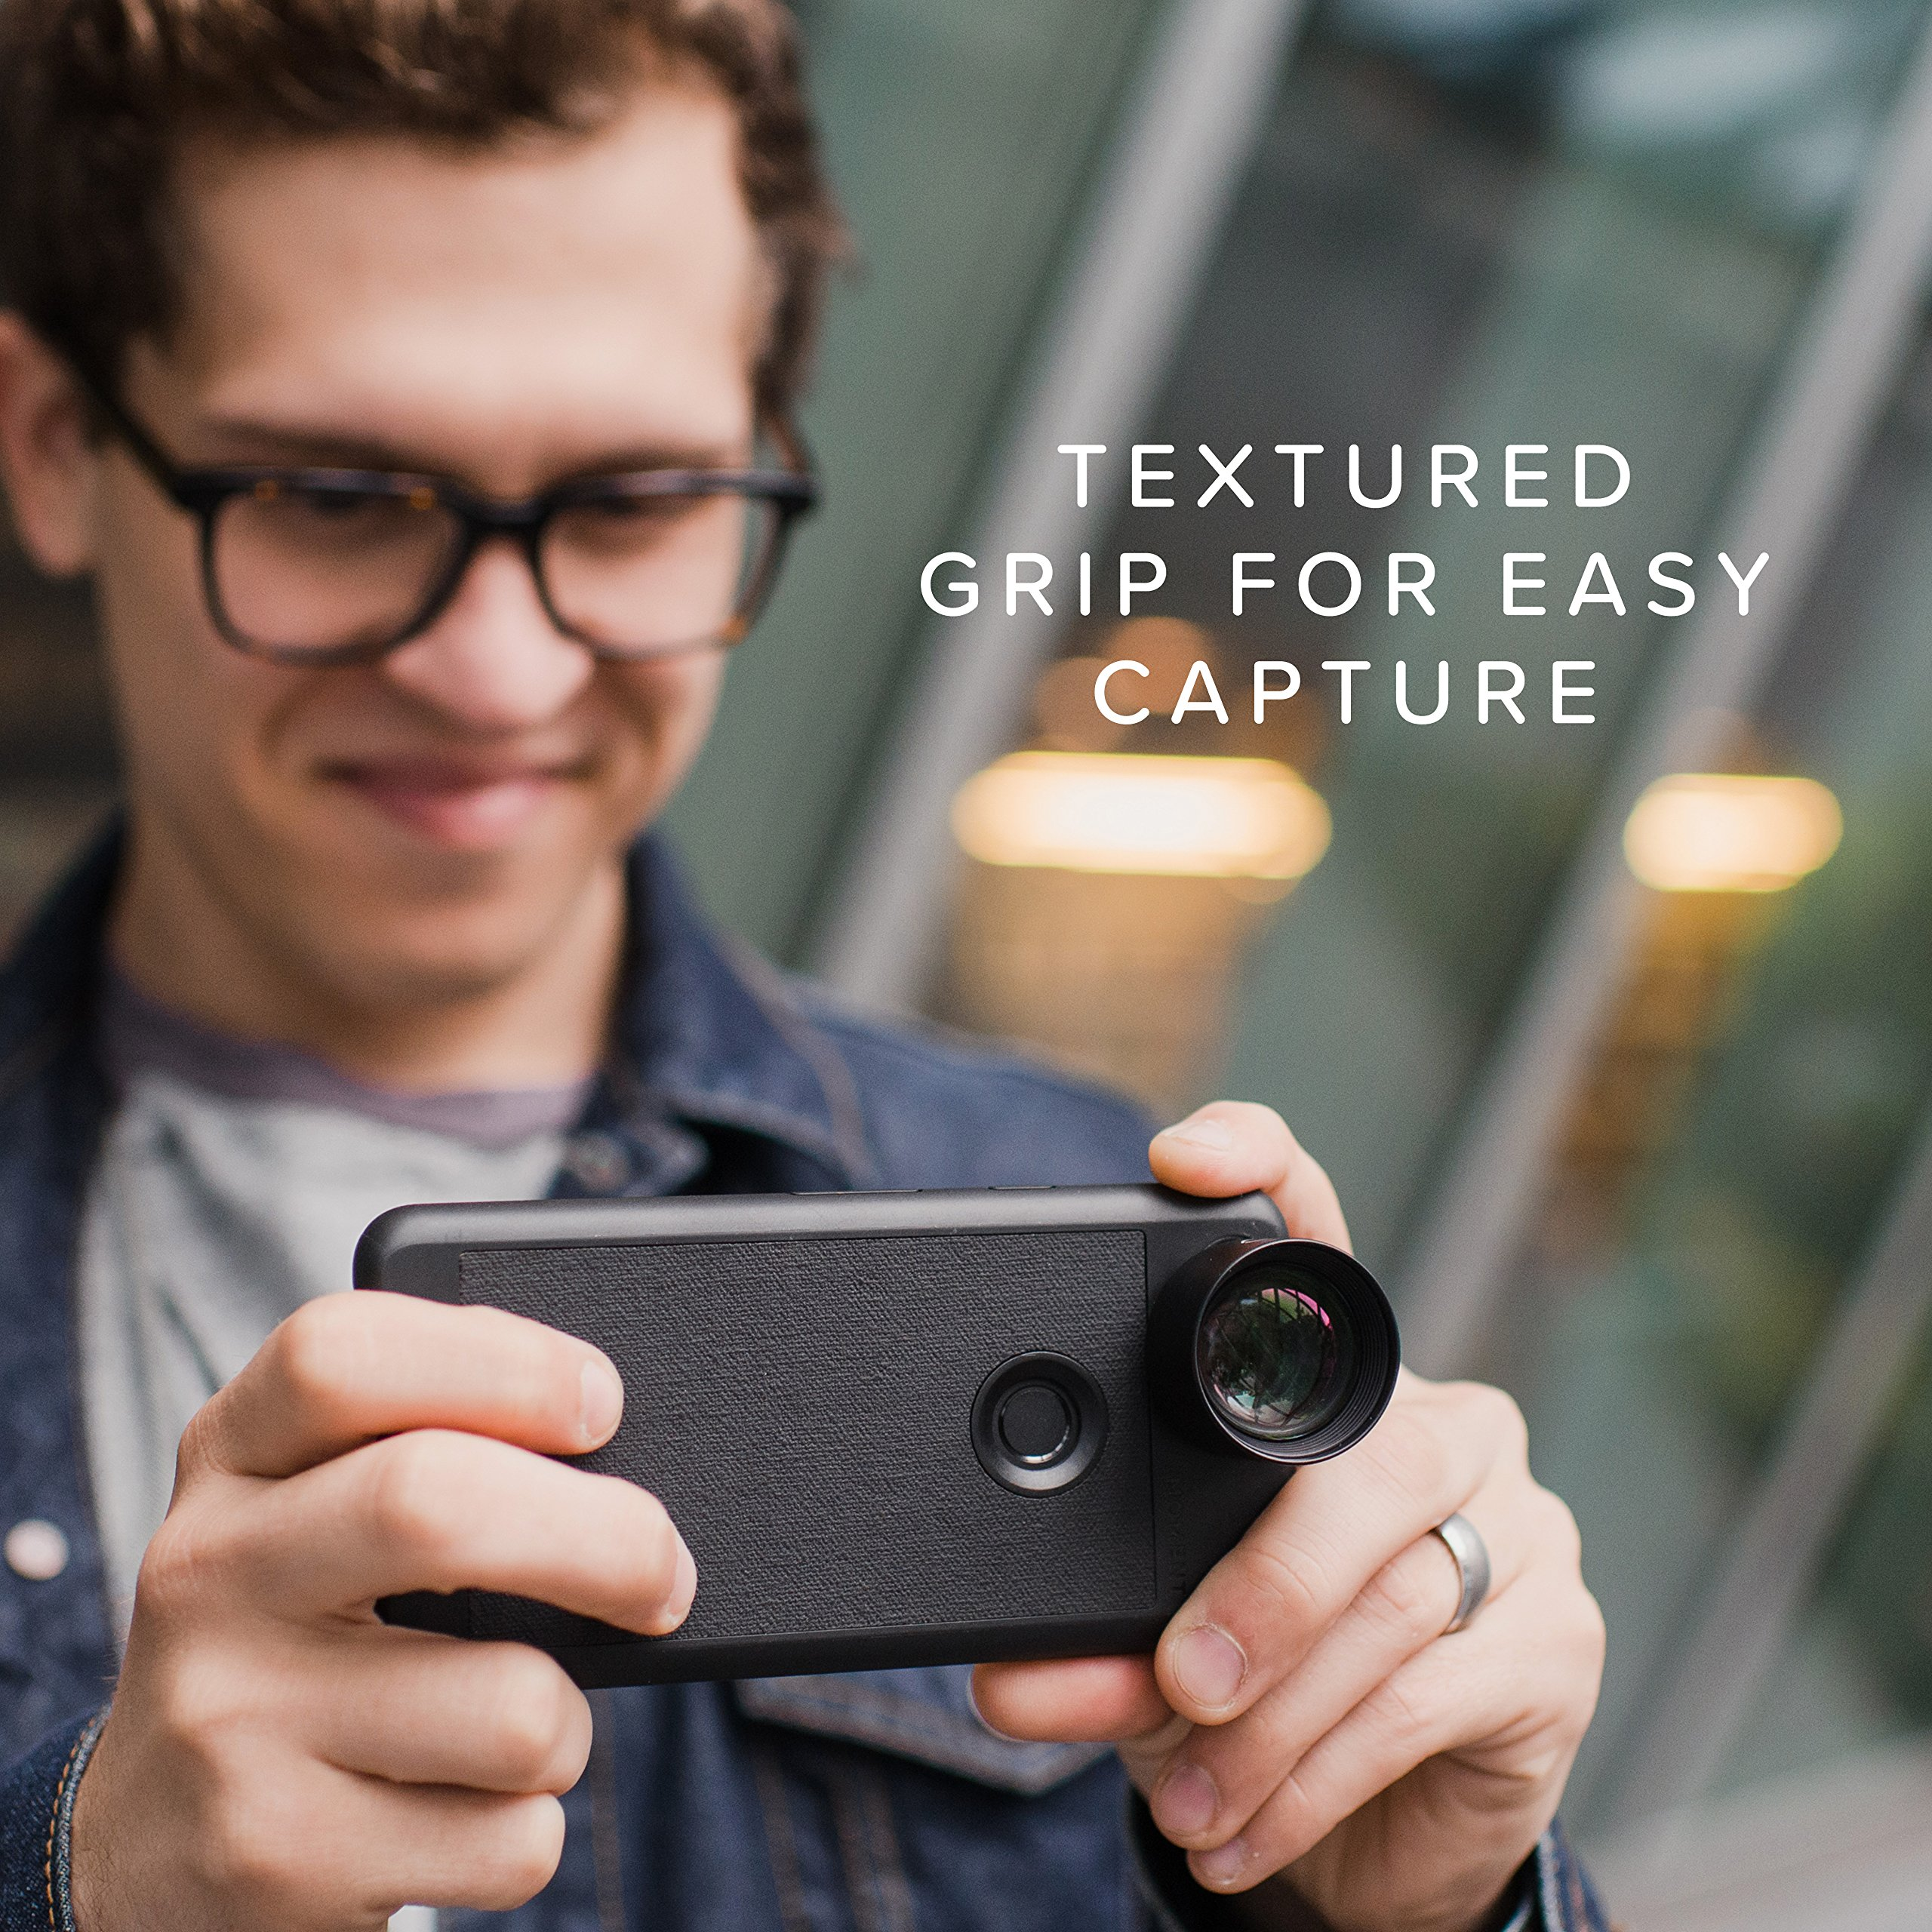 Pixel 2 Case with Telephoto Lens Kit || Moment Black Canvas Photo Case plus Tele Lens || Best google zoom attachment lens with thin protective case. by Moment (Image #4)